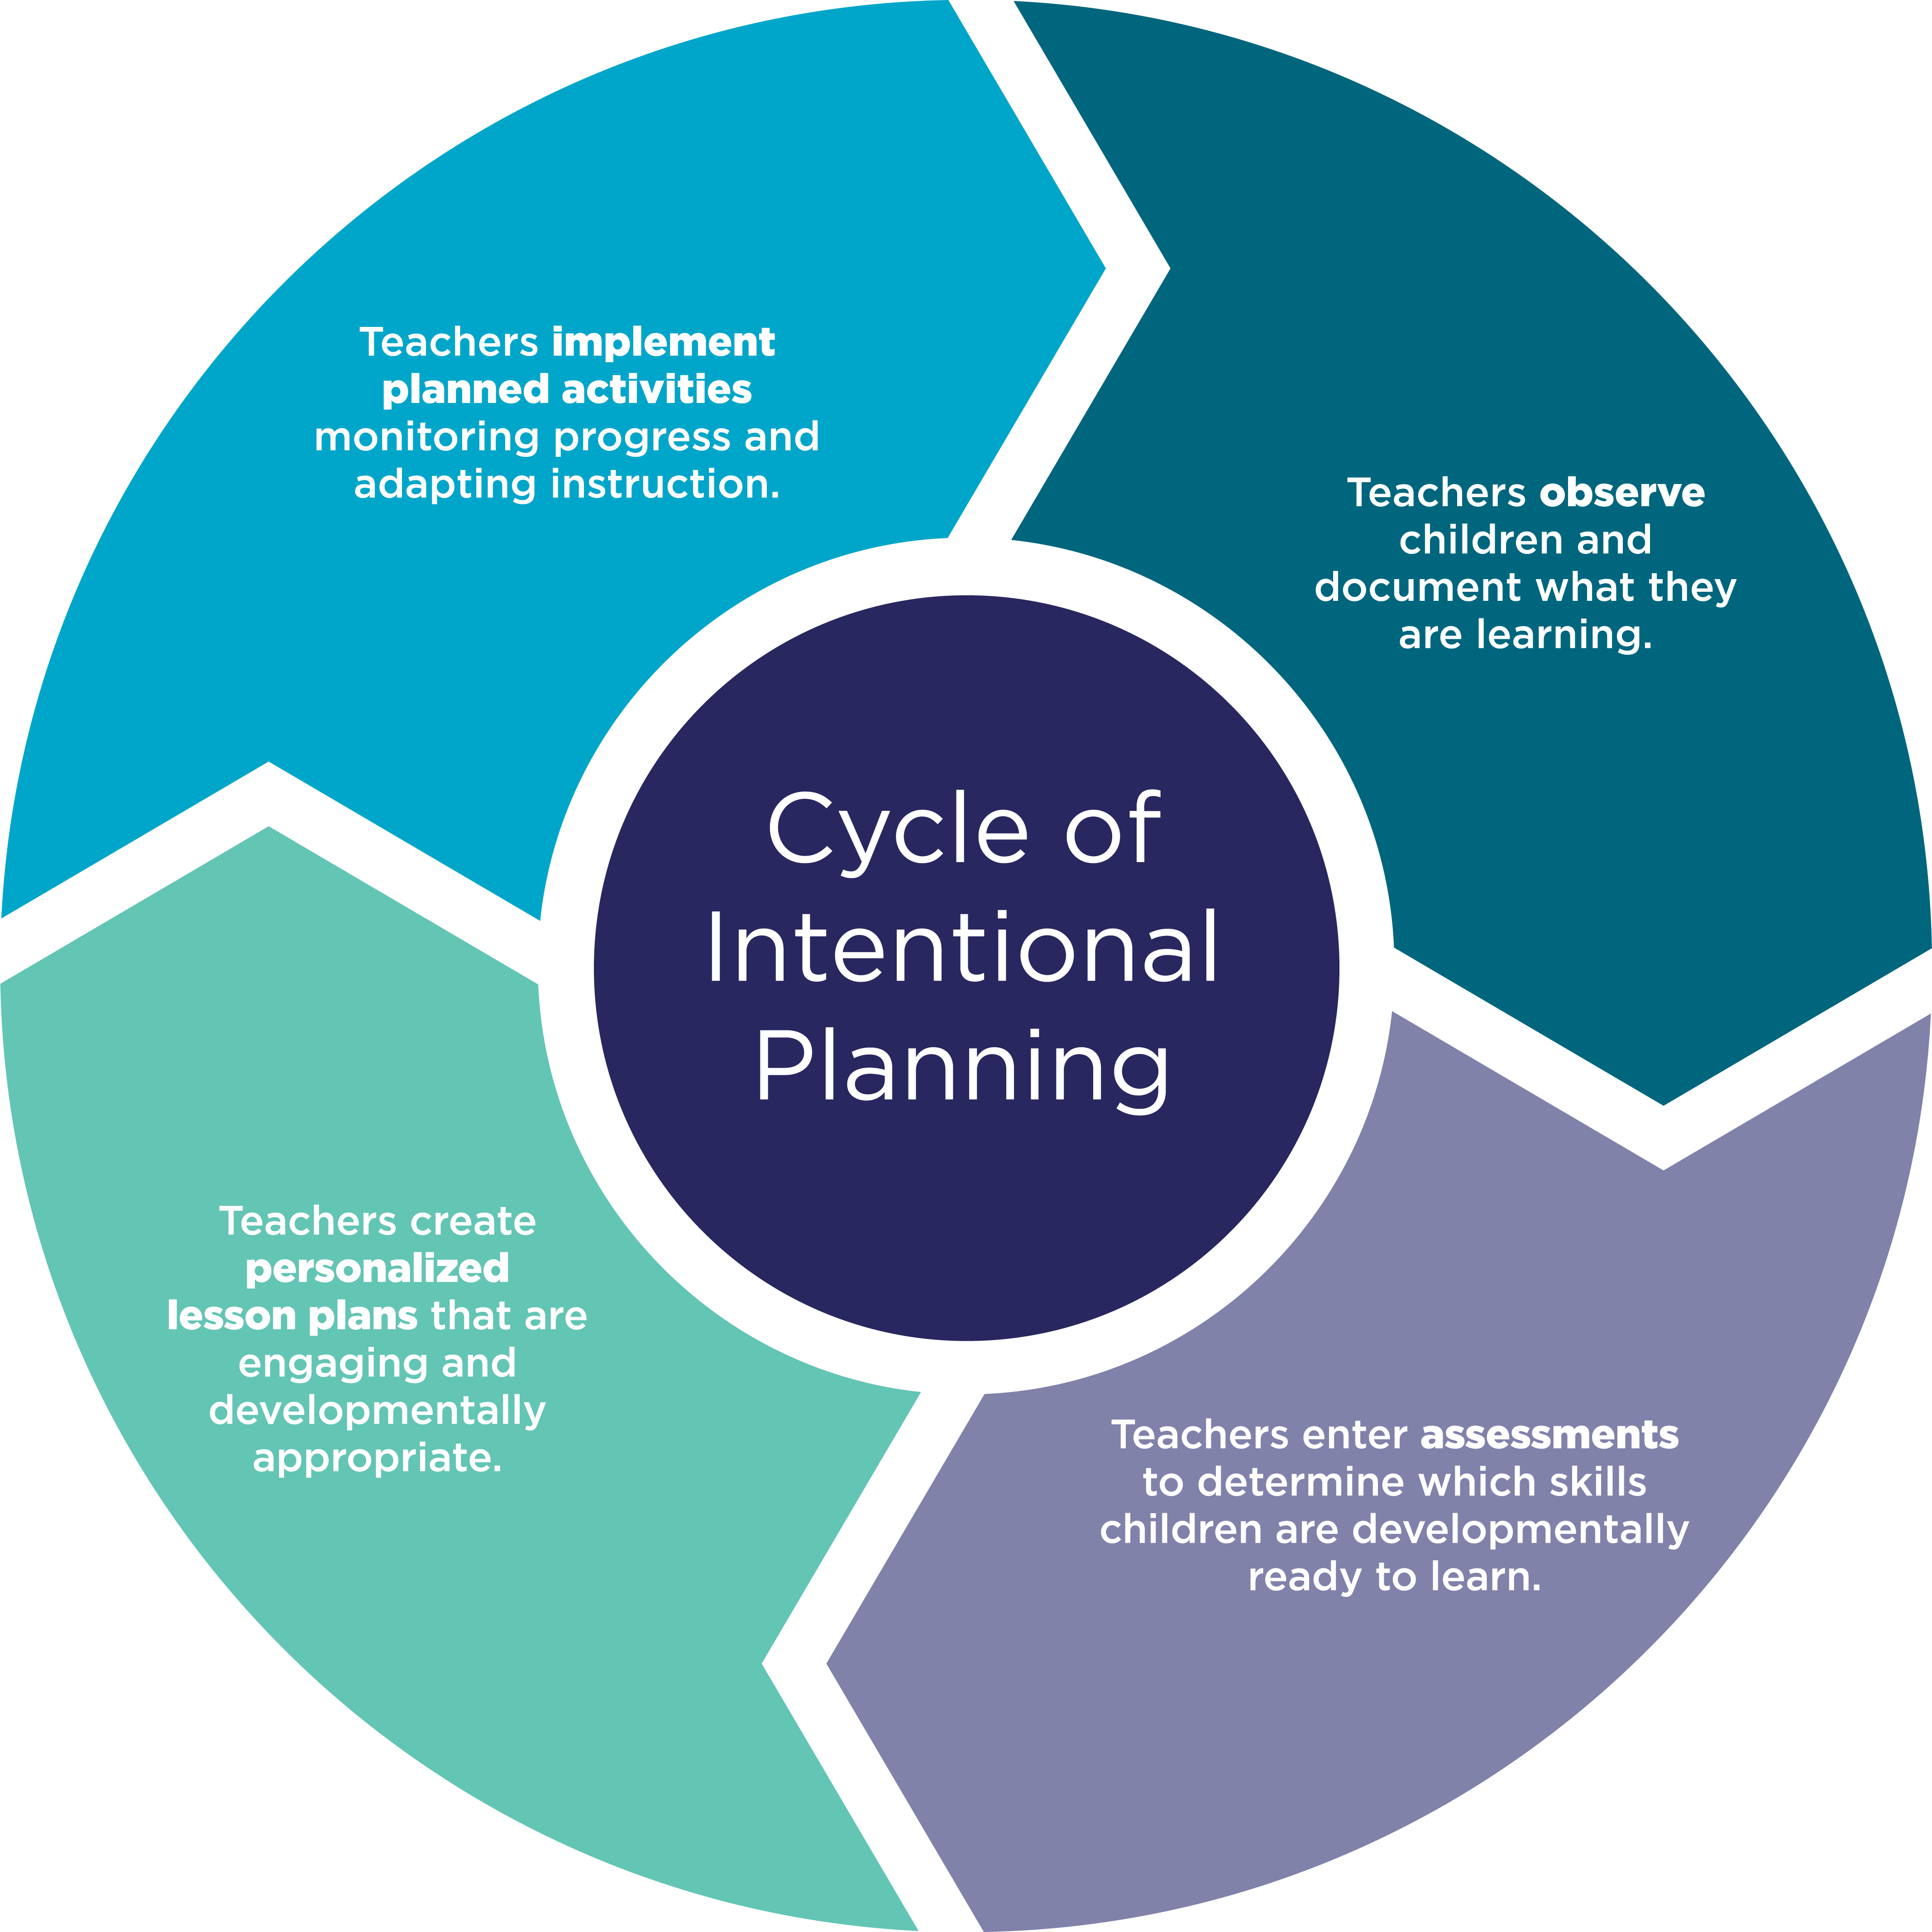 Cycle of Intentional Planning